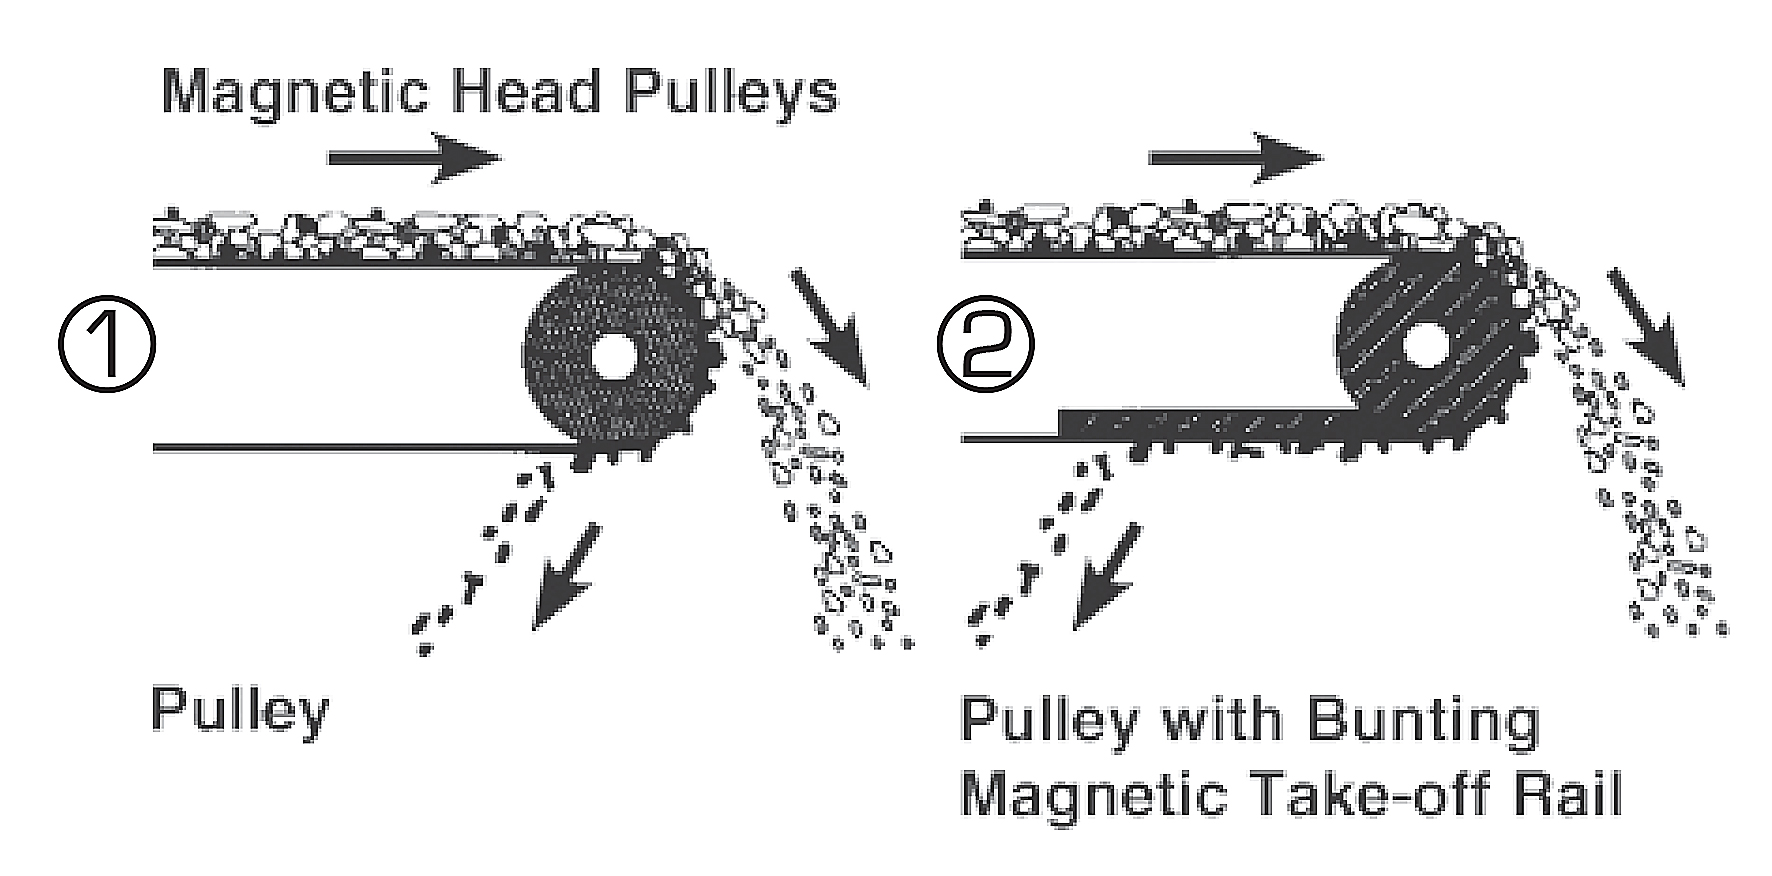 Magnetic Head Pulleys For Conveyor Systems Bunting